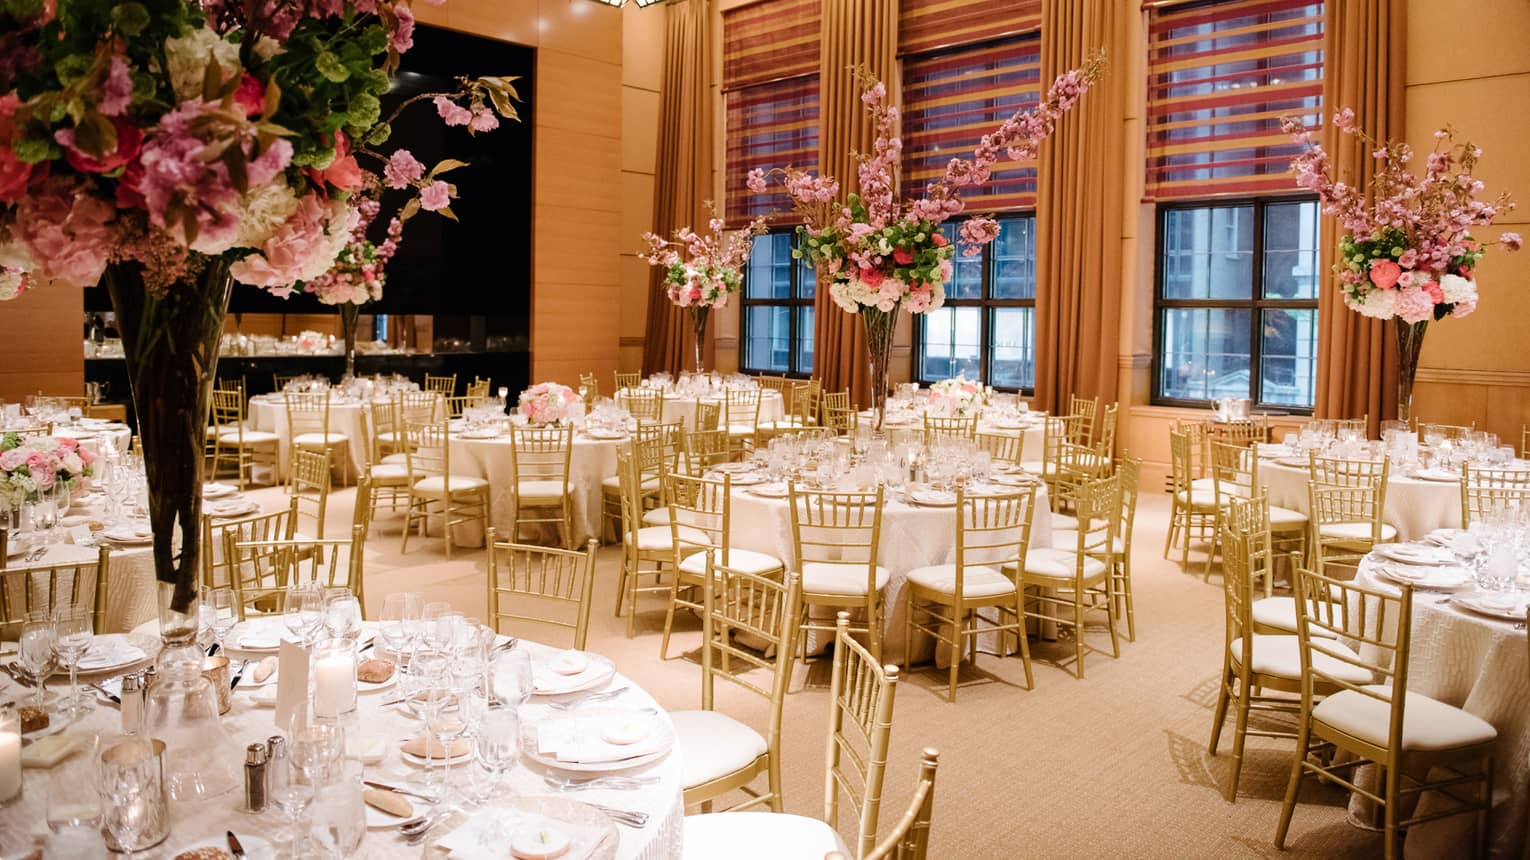 Wedding reception, round tables with gold chairs and large flower centrepieces in tall vases